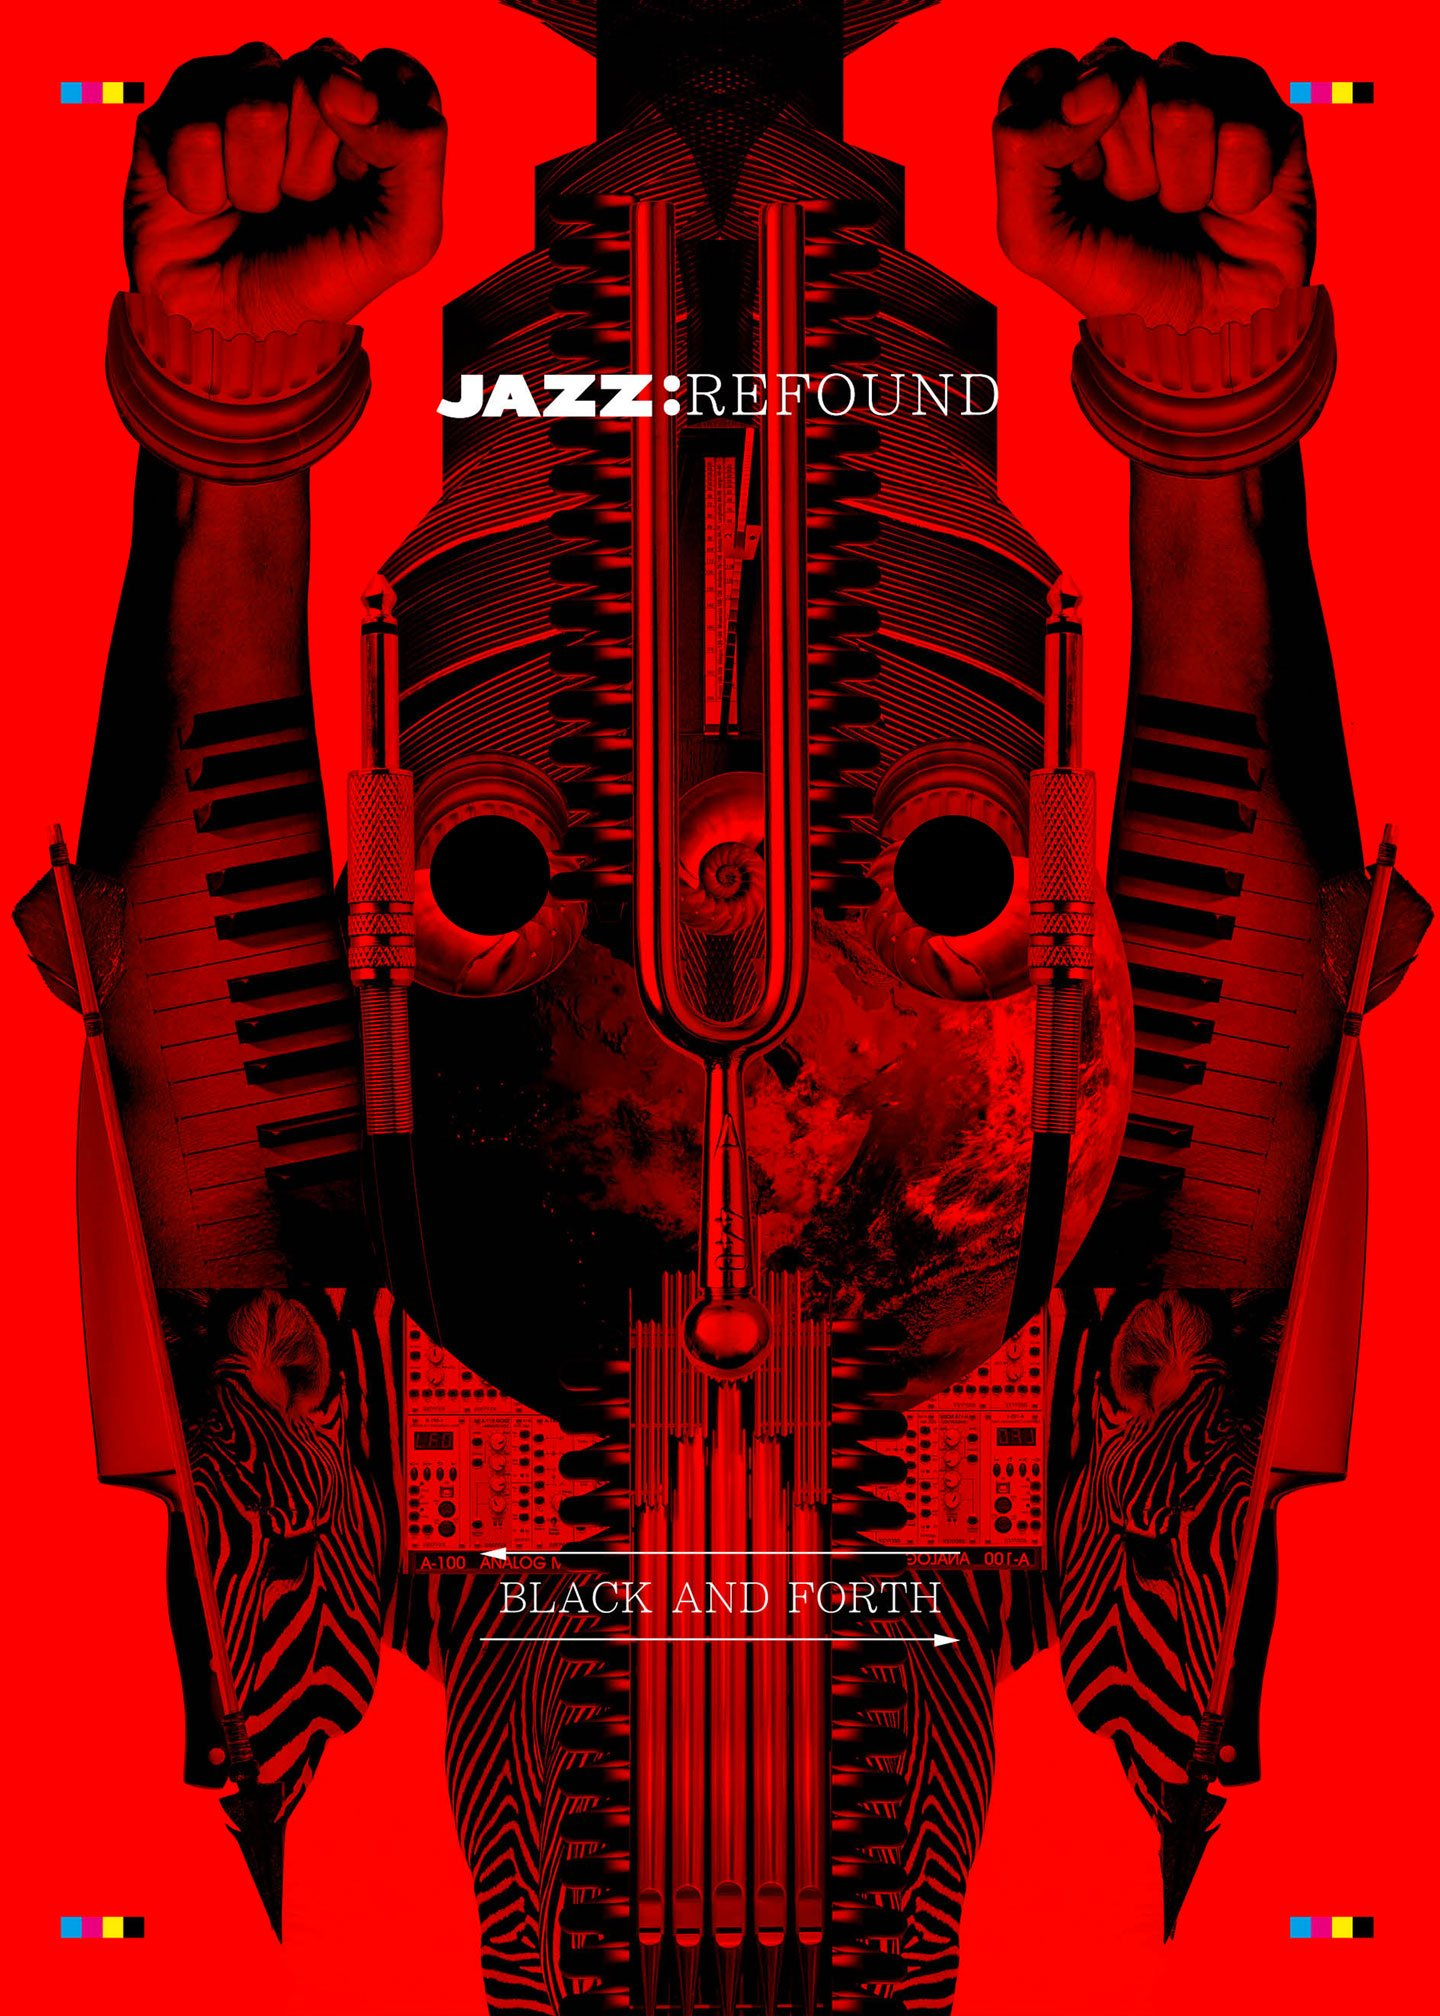 Jazz Re Found Black & Forth Weekender | Collater.al